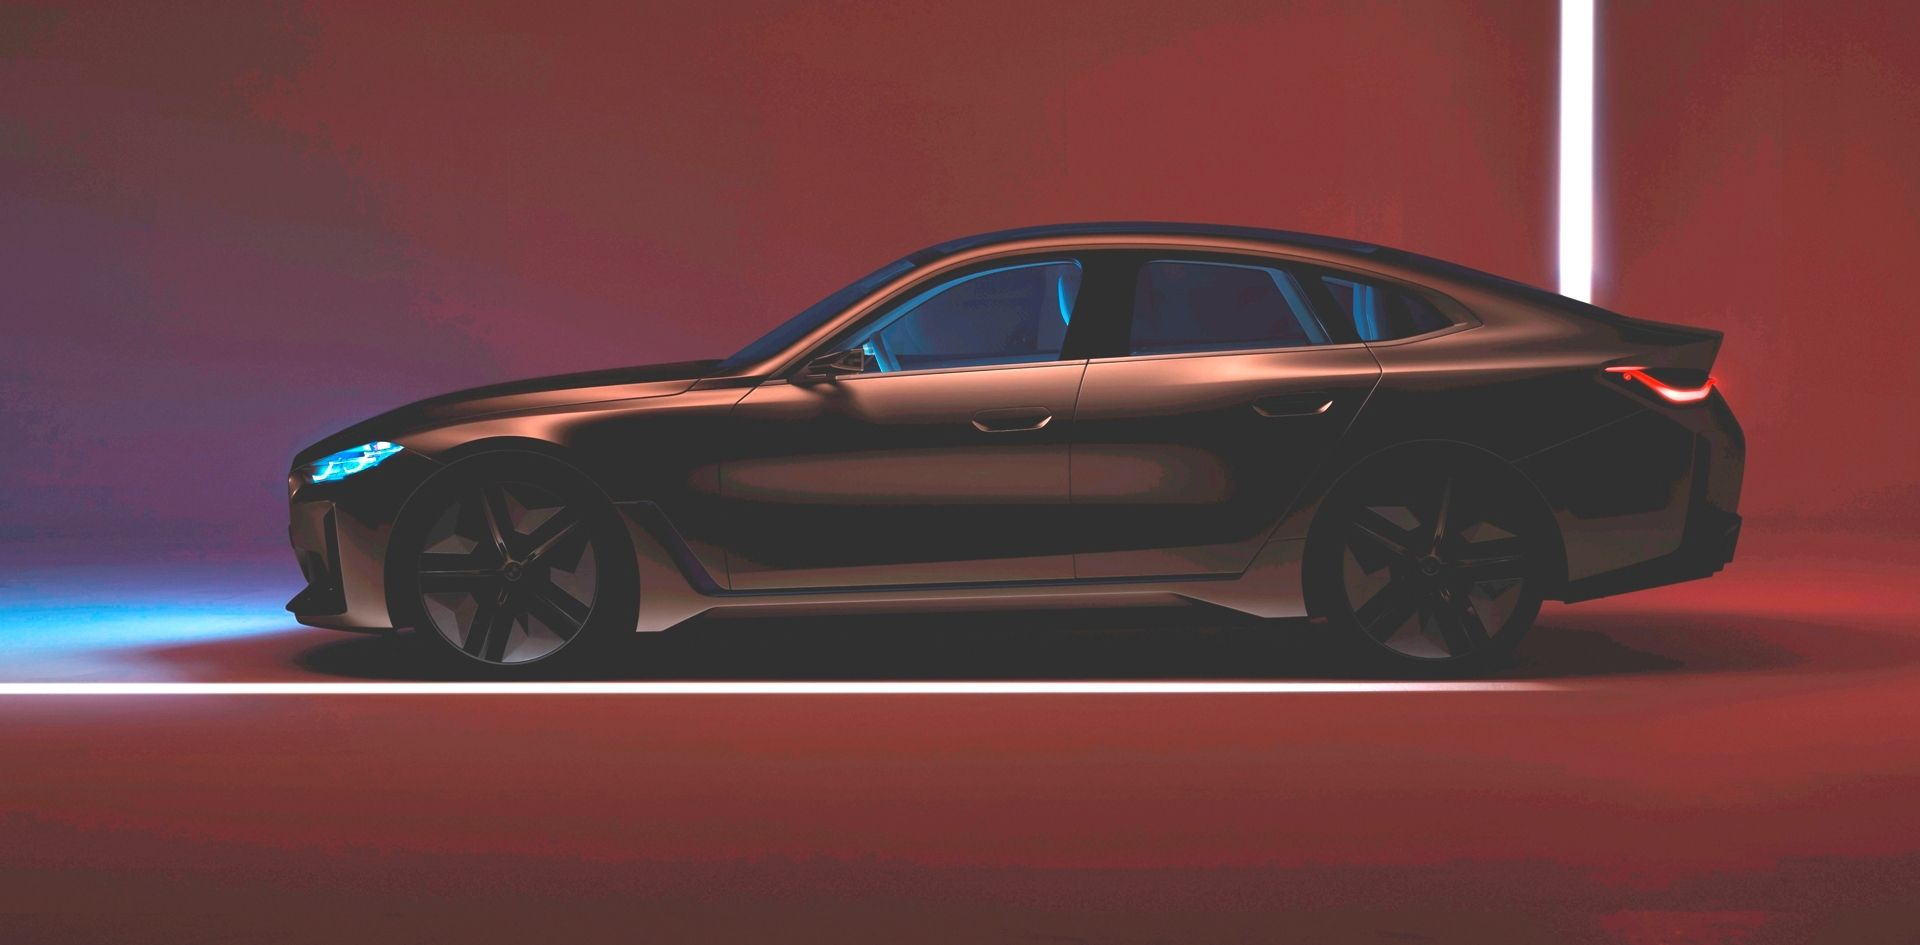 Bmw Concept I4 A New Teaser Before March 3rd Online Reveal Bmw